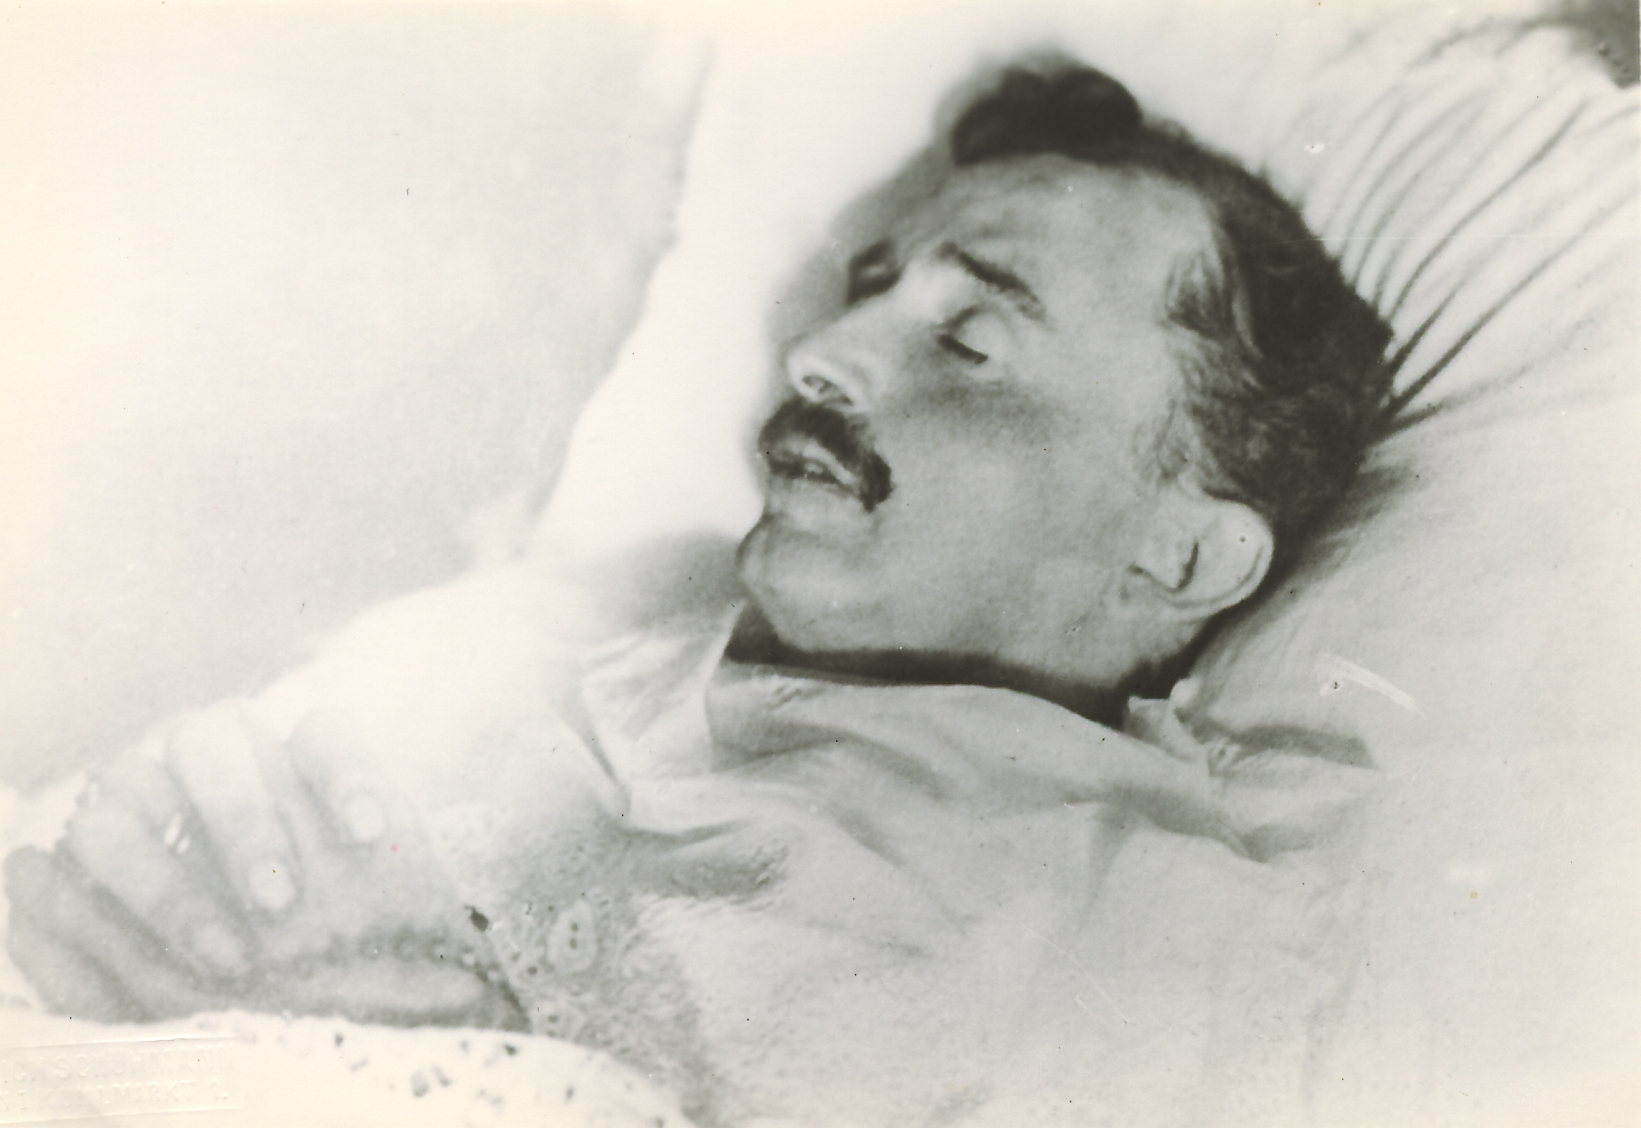 The Emperor Shortly After Death, April 1, 1922